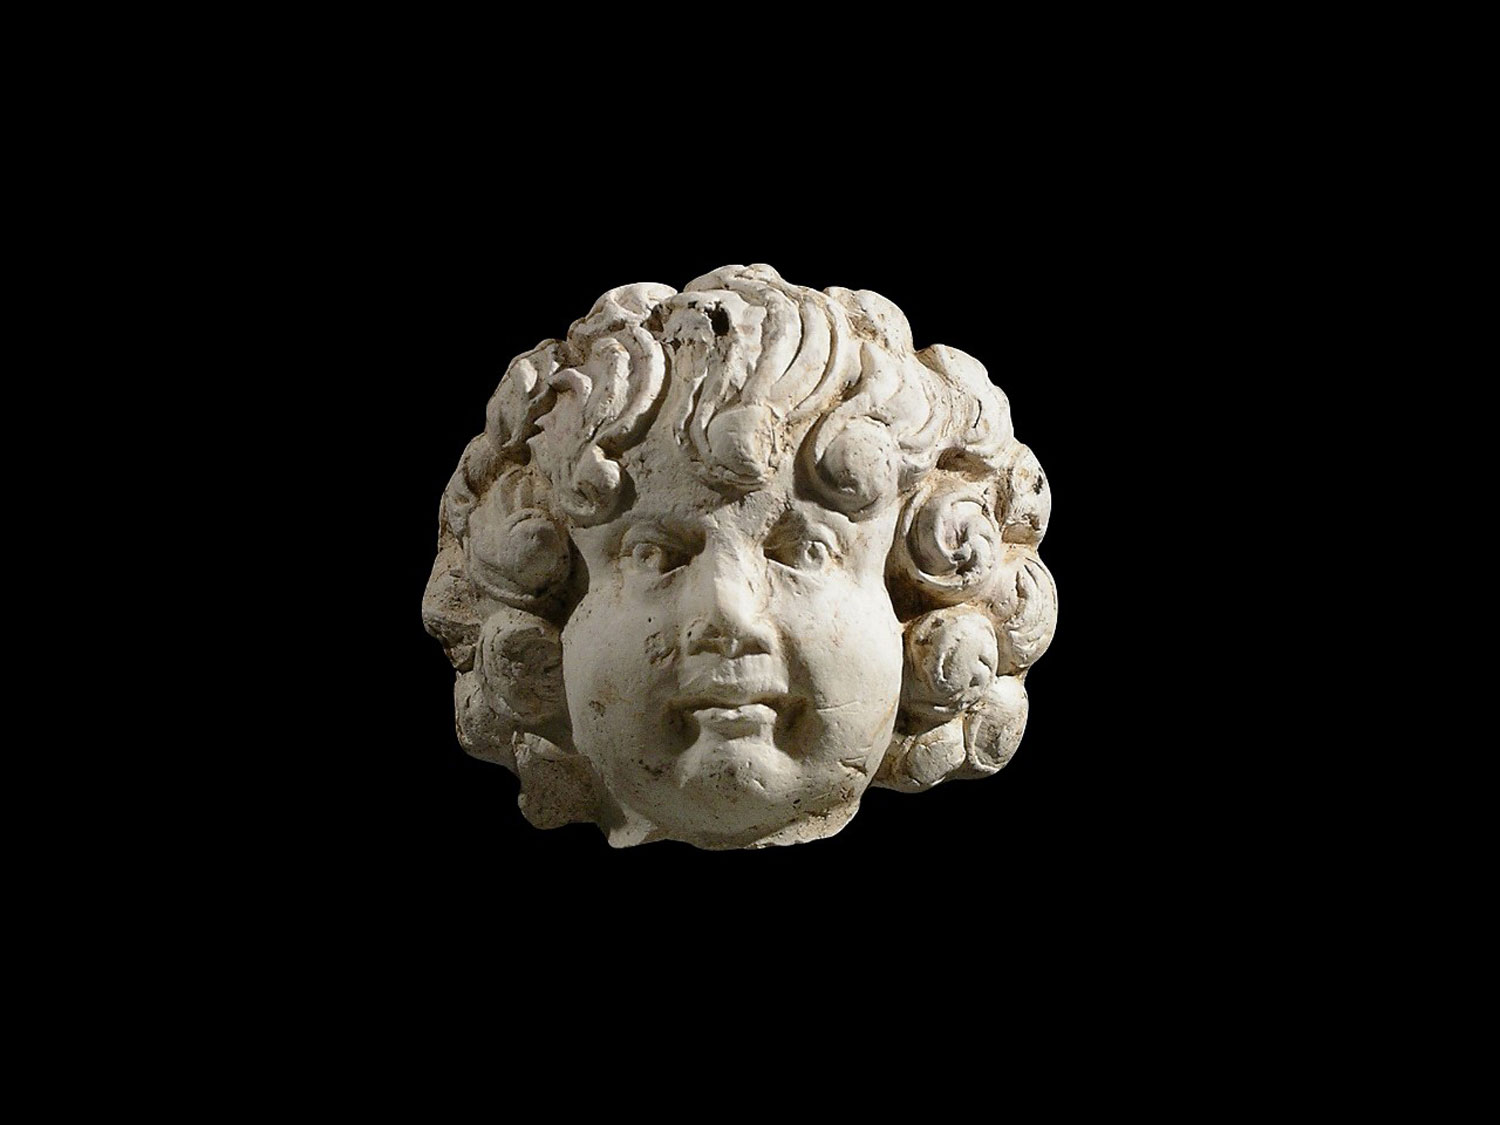 Head of an earthenware cherub figurine excavated at the St. John's site